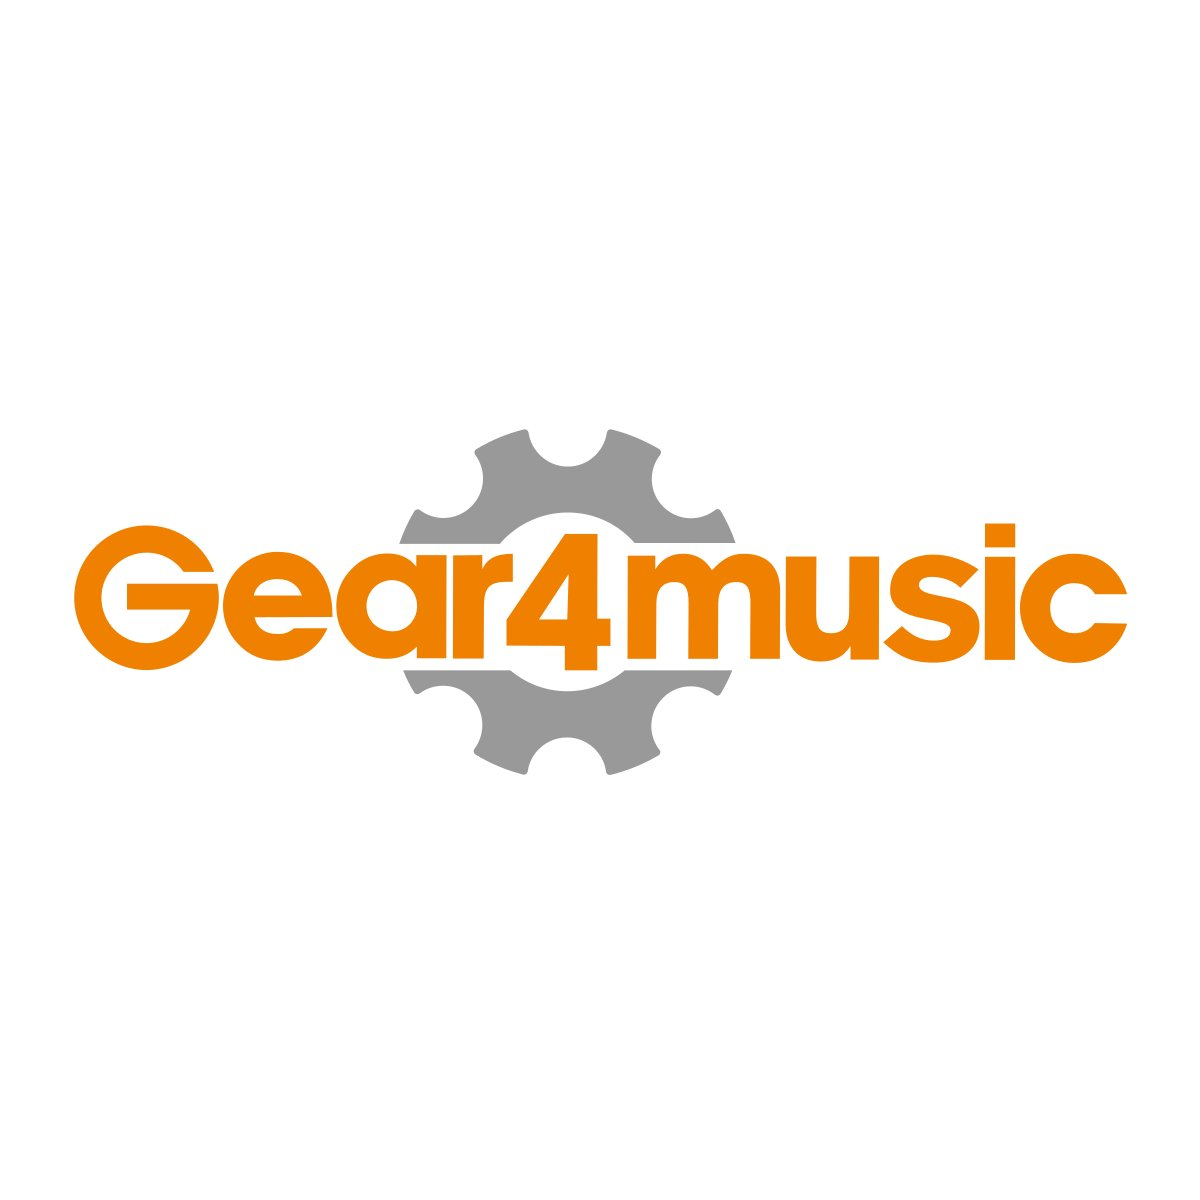 Dragspel av Gear4music, 24 Bas